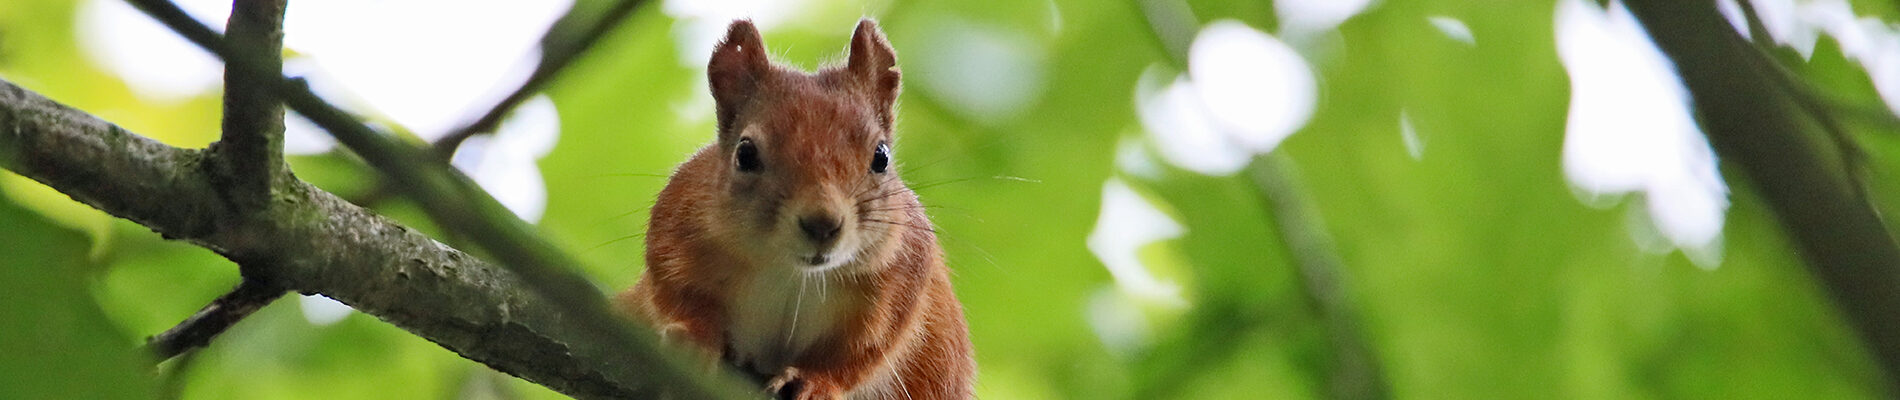 Conservation_spotlight_red squirrel_banner